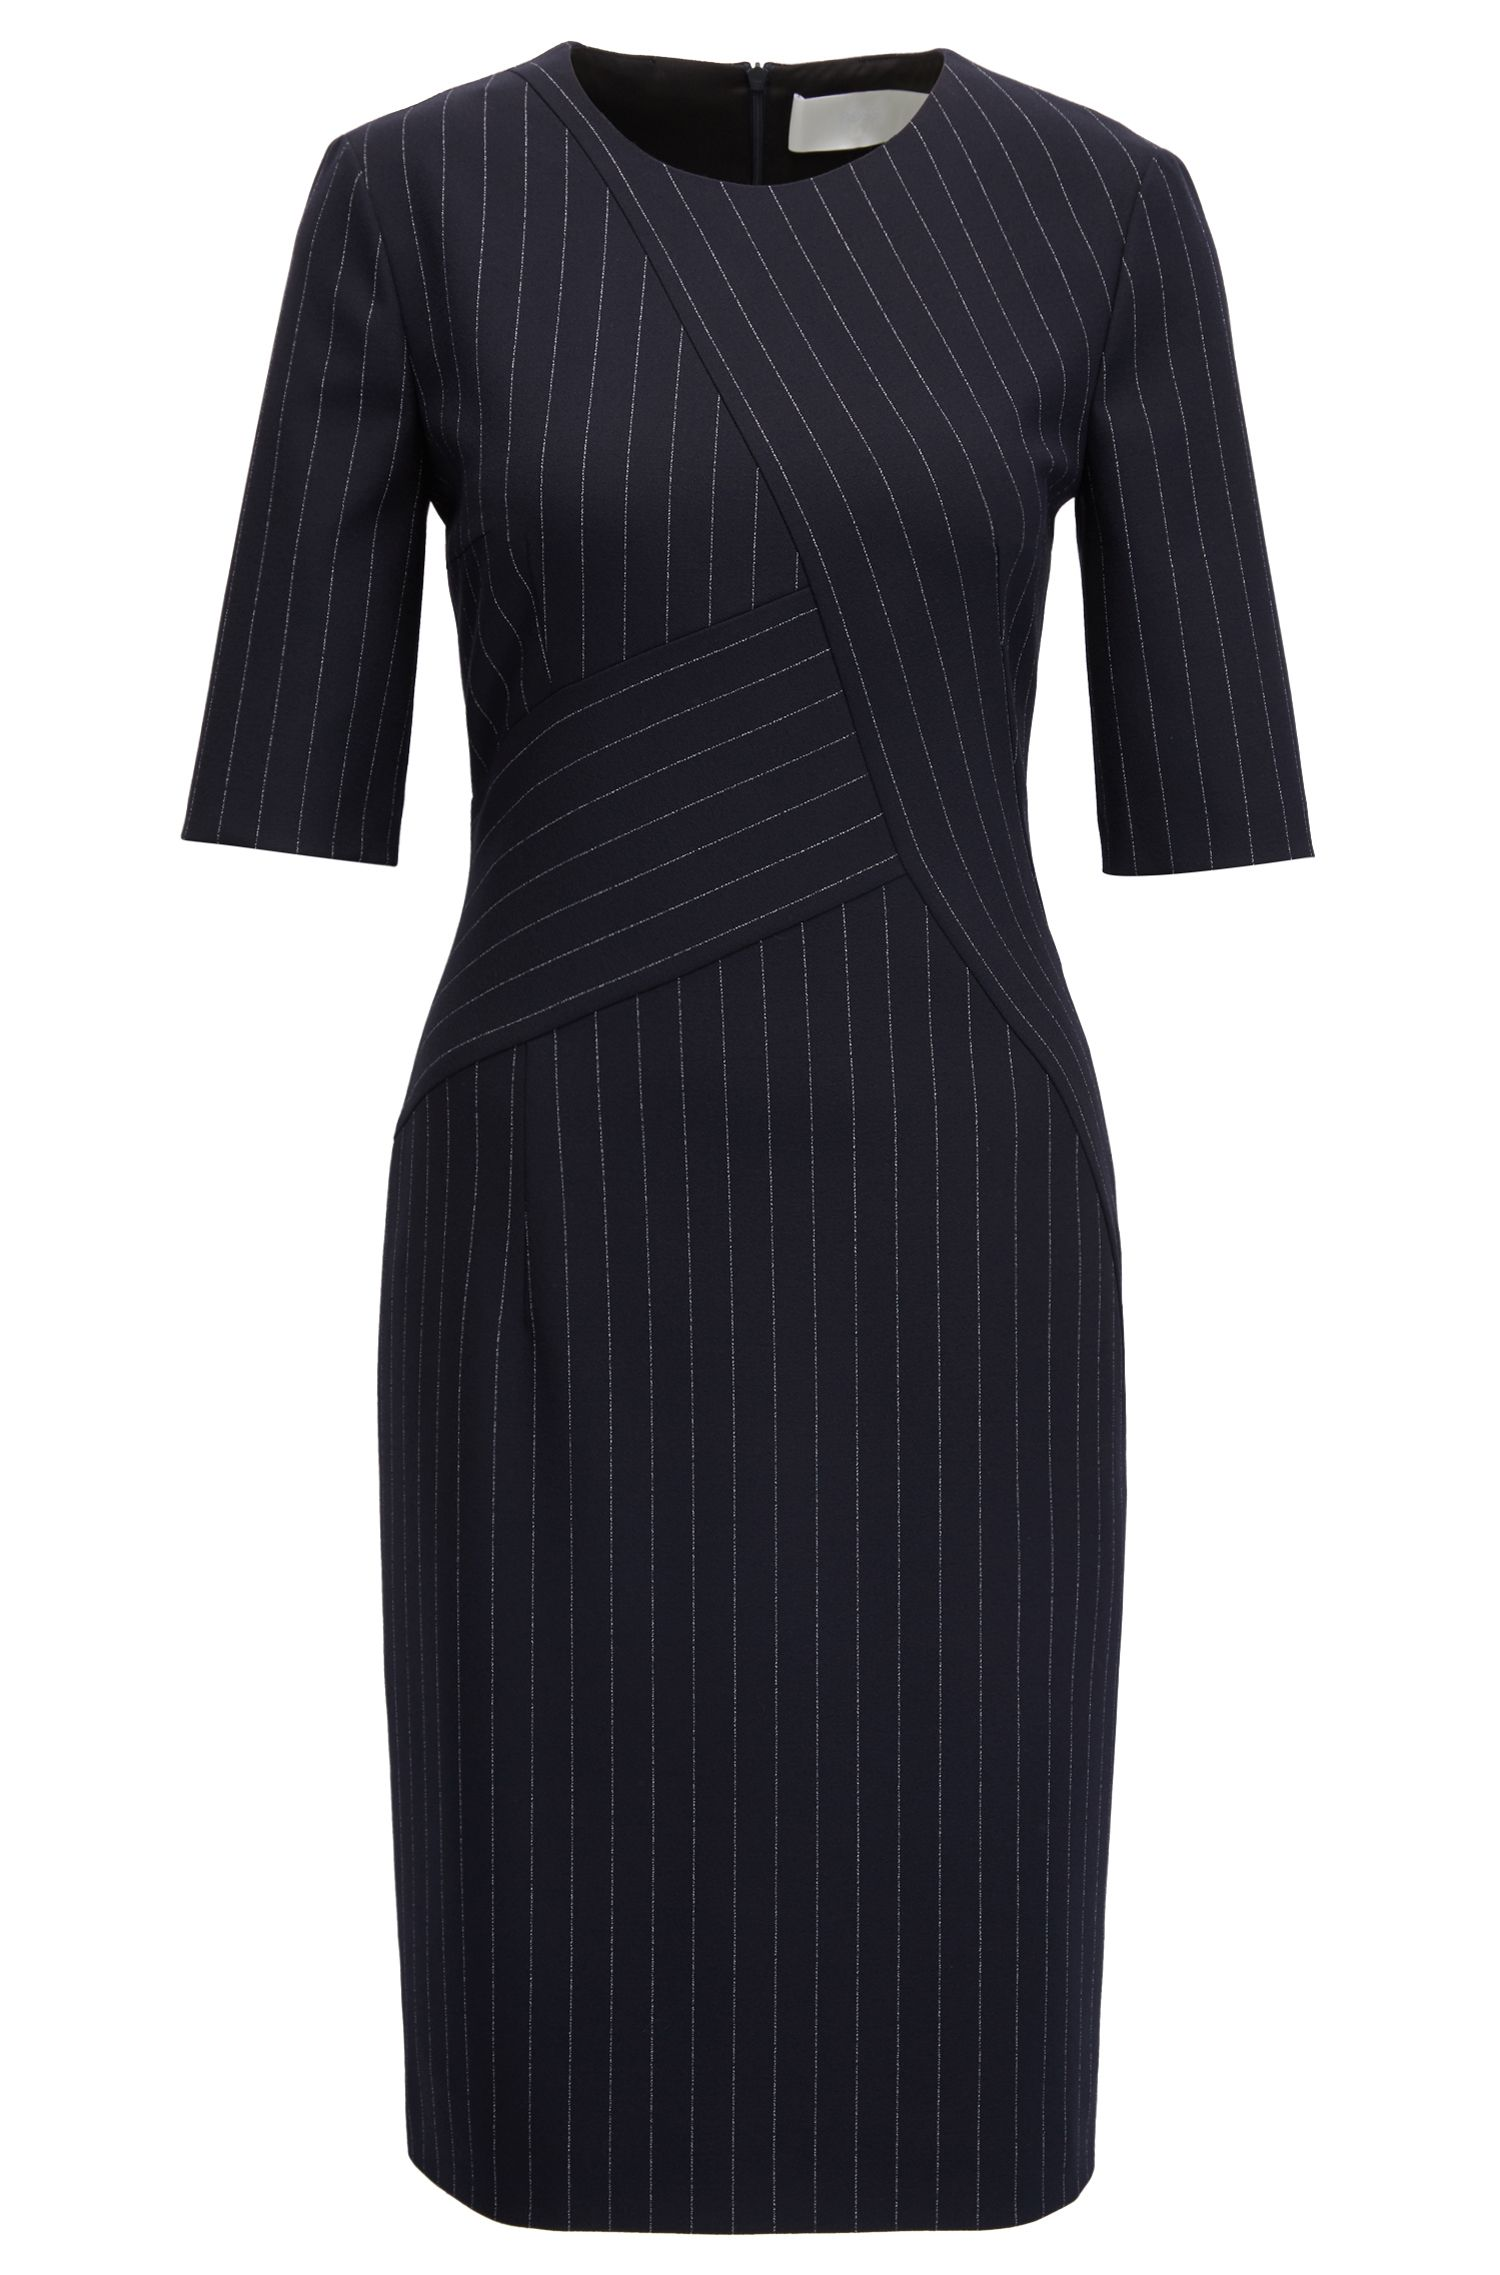 Pinstripe dress in midweight fabric